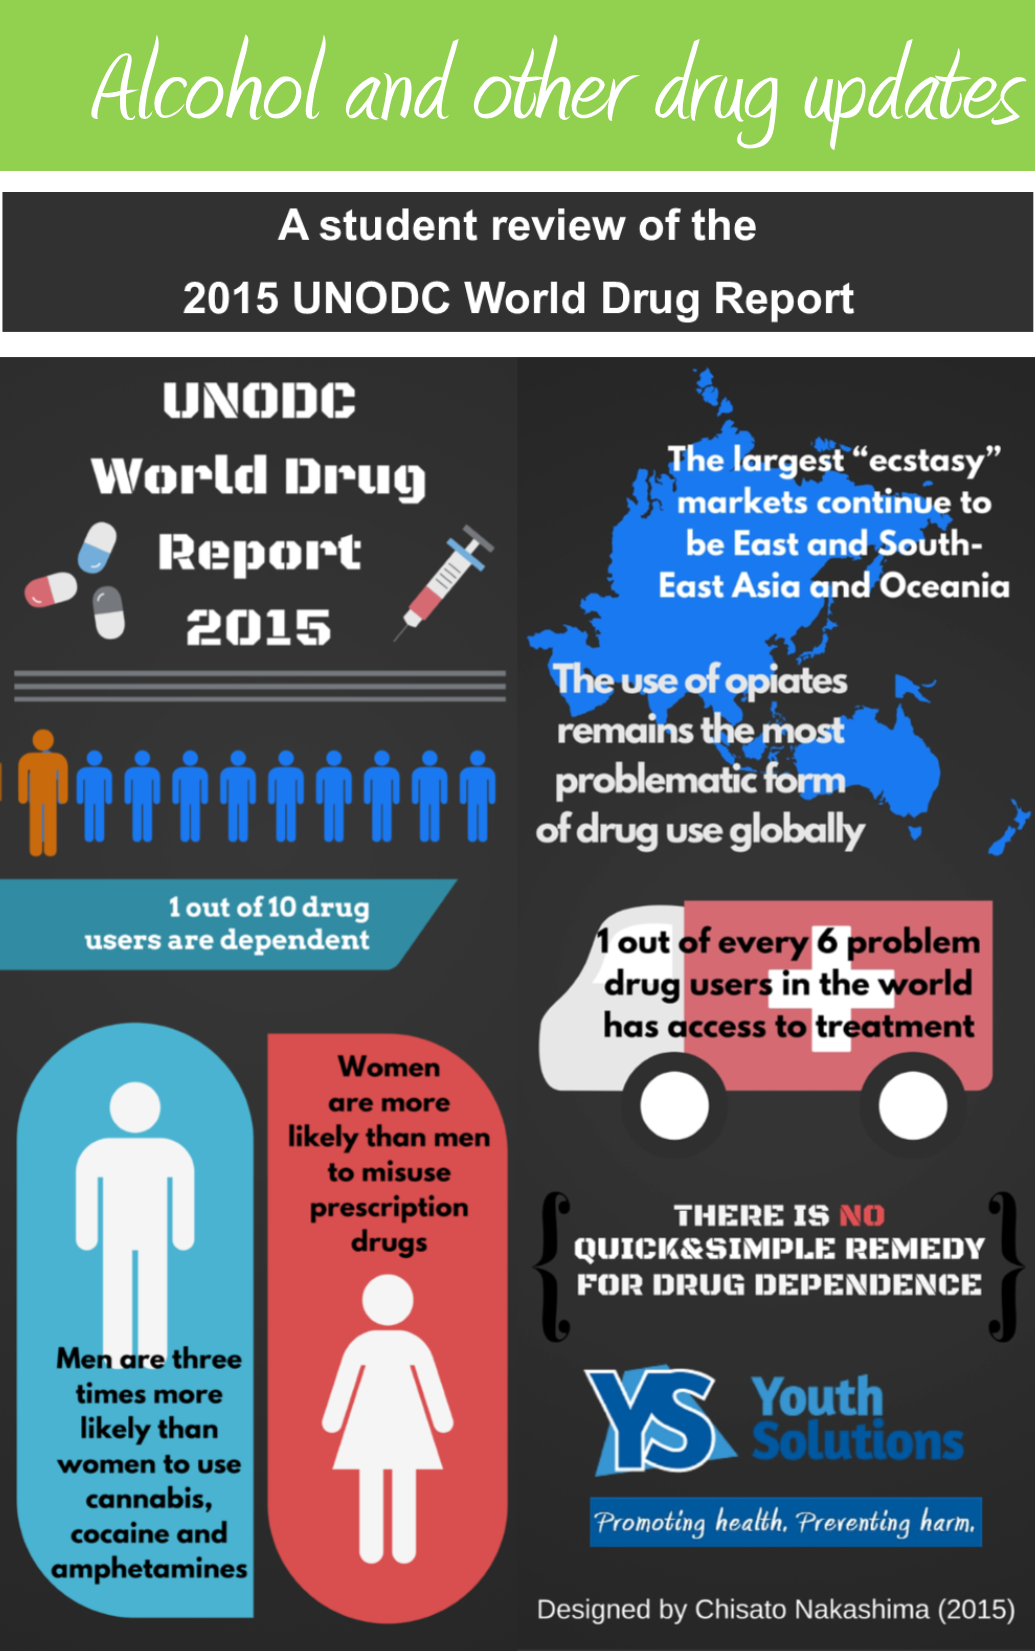 A student review of the 2015 UNODC World Drug Report